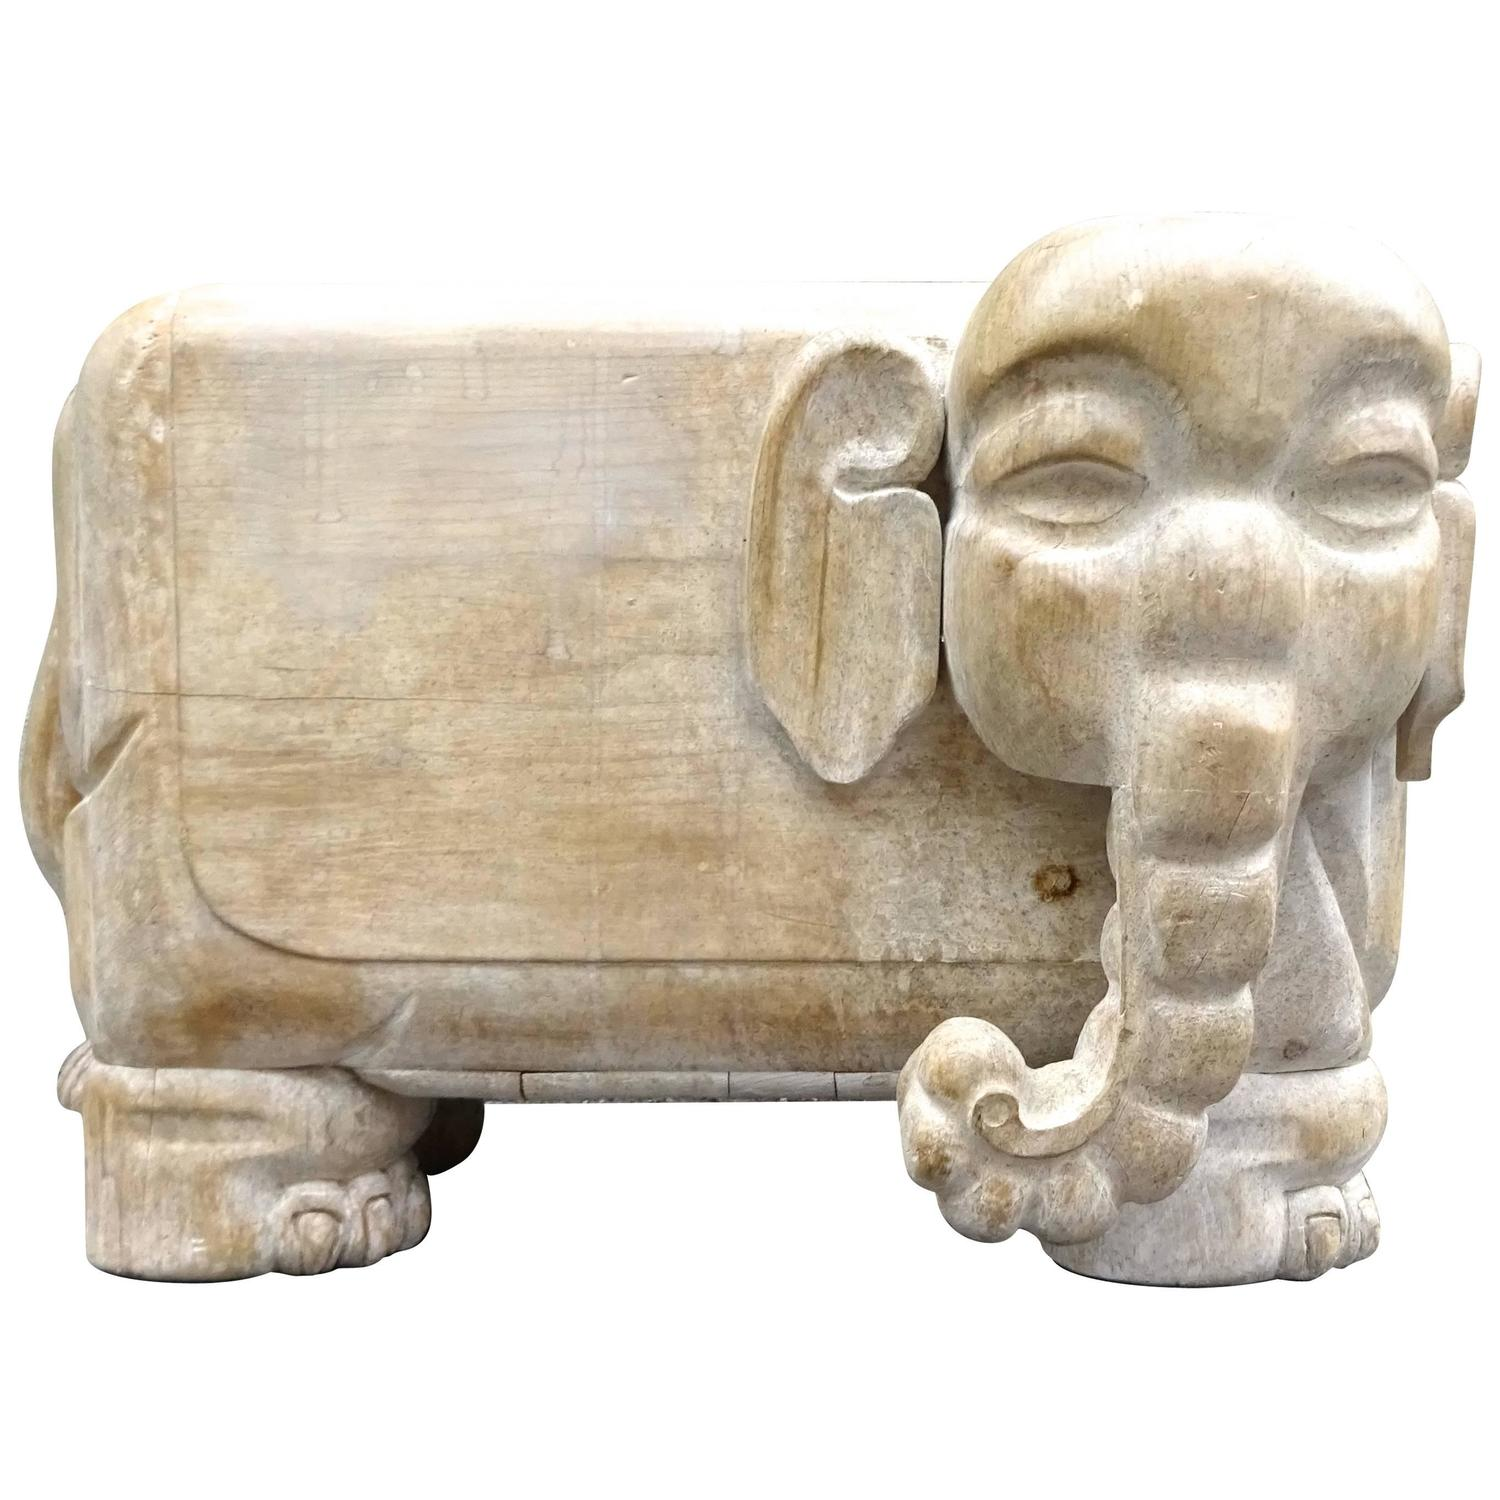 Very Impressive portraiture of Sculptural 1970s Italian Carved Wood Elephant Table at 1stdibs with #826A49 color and 1500x1500 pixels